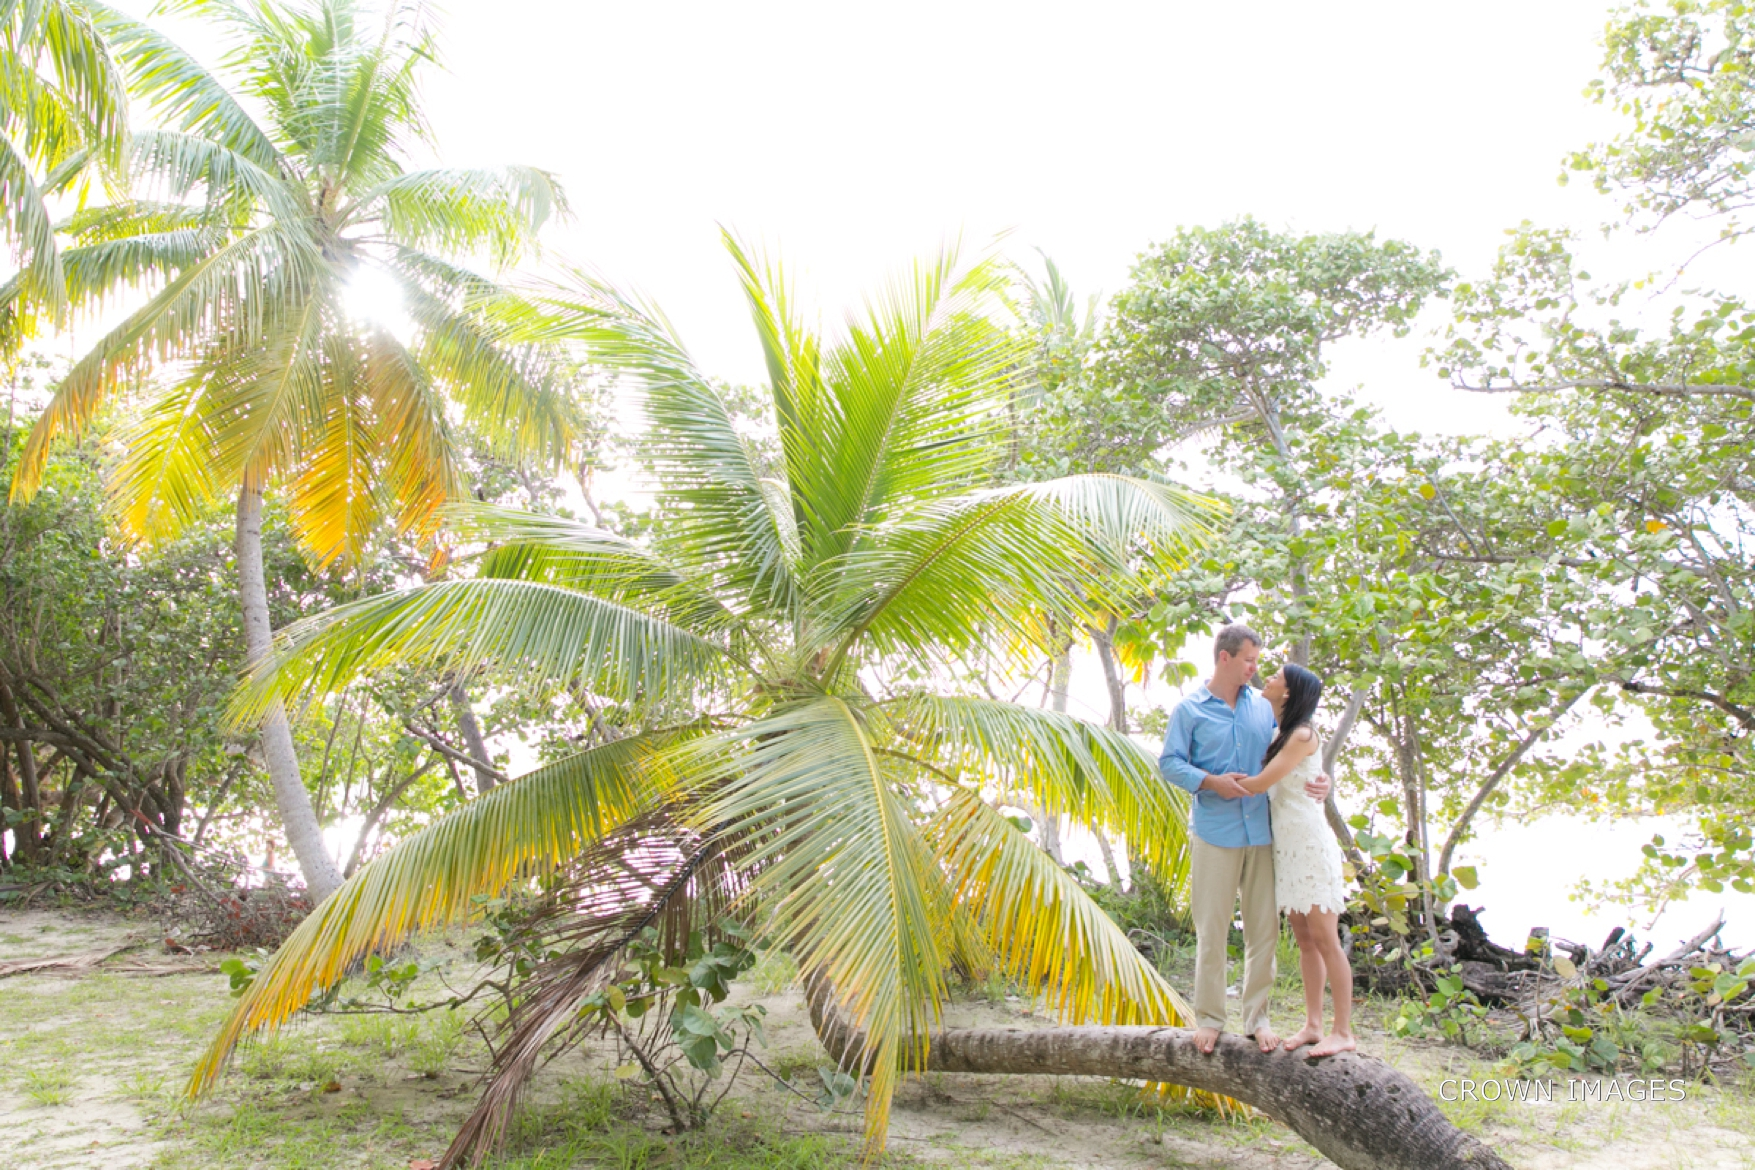 engagement_photos_virgin_islands_crown_images_0628.jpg